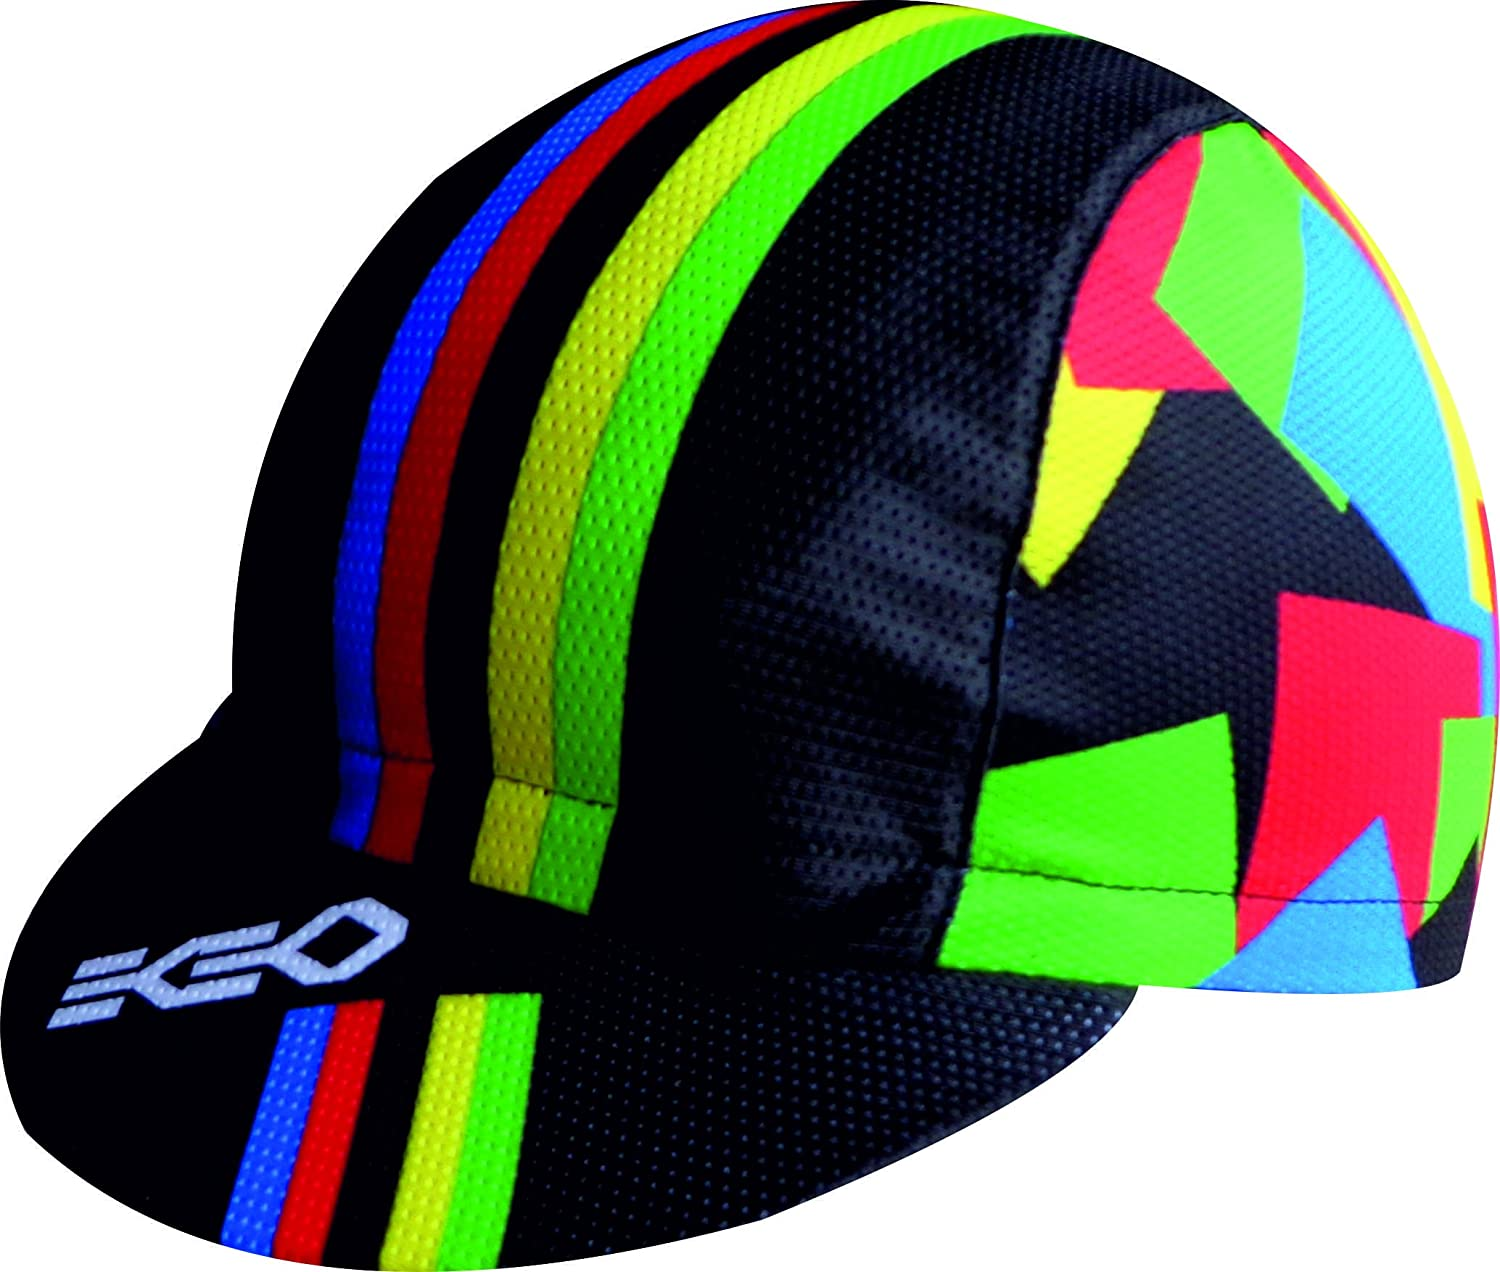 EKEKO SPORT Micro Perforated Cap. Made Trai by Portland Mall Free Shipping New Cycling V-System